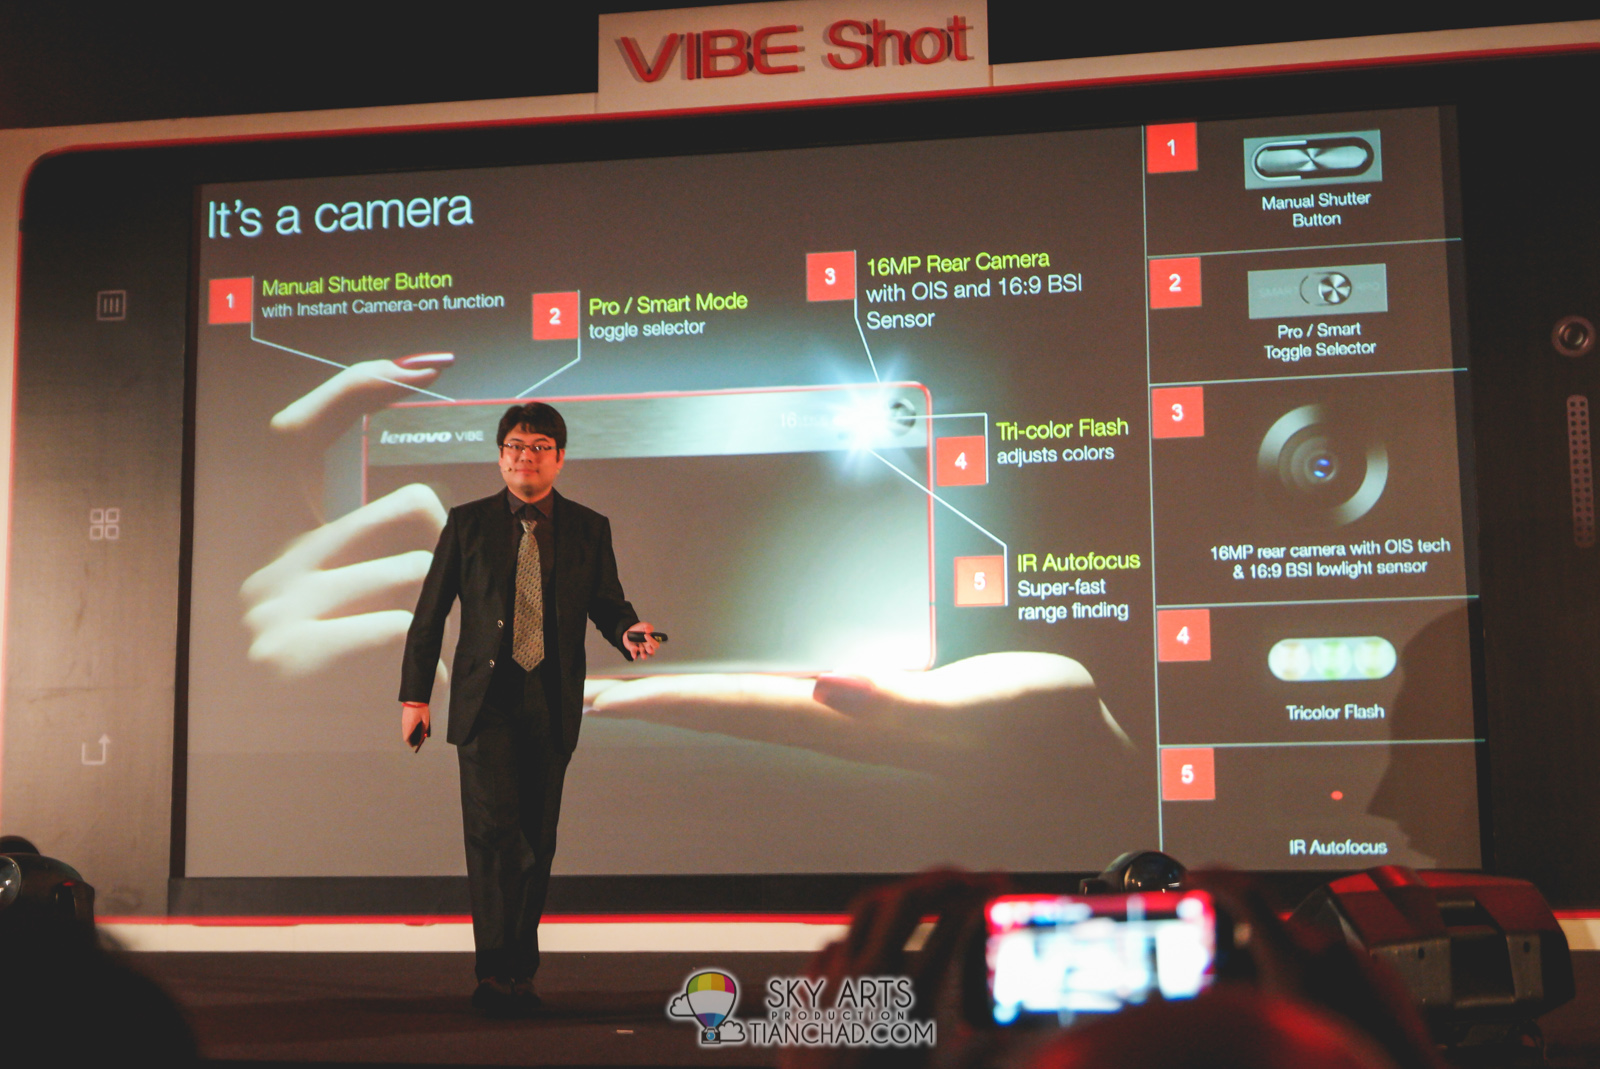 Lenovo Vibe Shot Camera Smartphone With Triflash Ir Focus Rm1399 Grey Is A Phone 16 Mp Rear And Manual Shutter Button